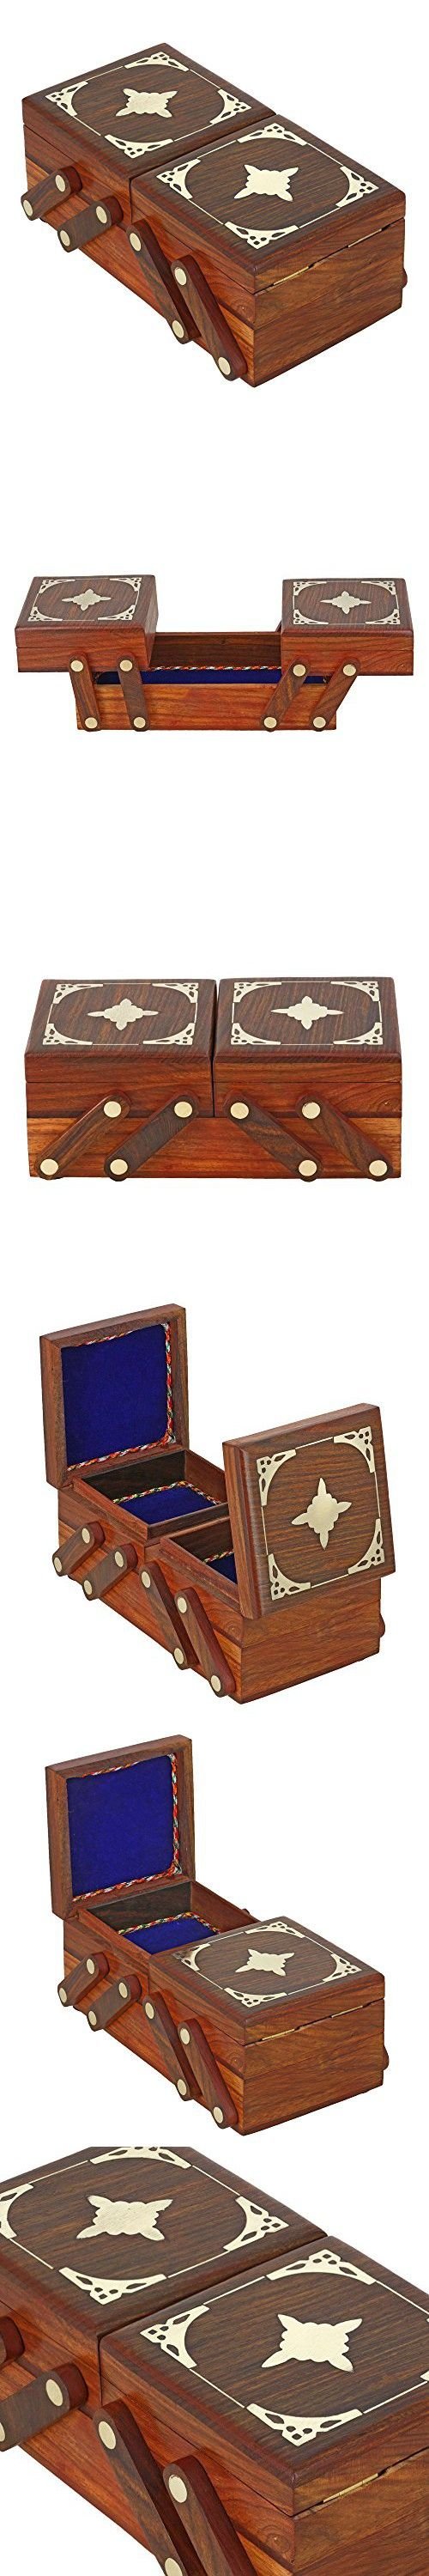 Handmade Jewelry Box Wooden 3 in 1 Brass Inlay Decor Indian Gift for Women